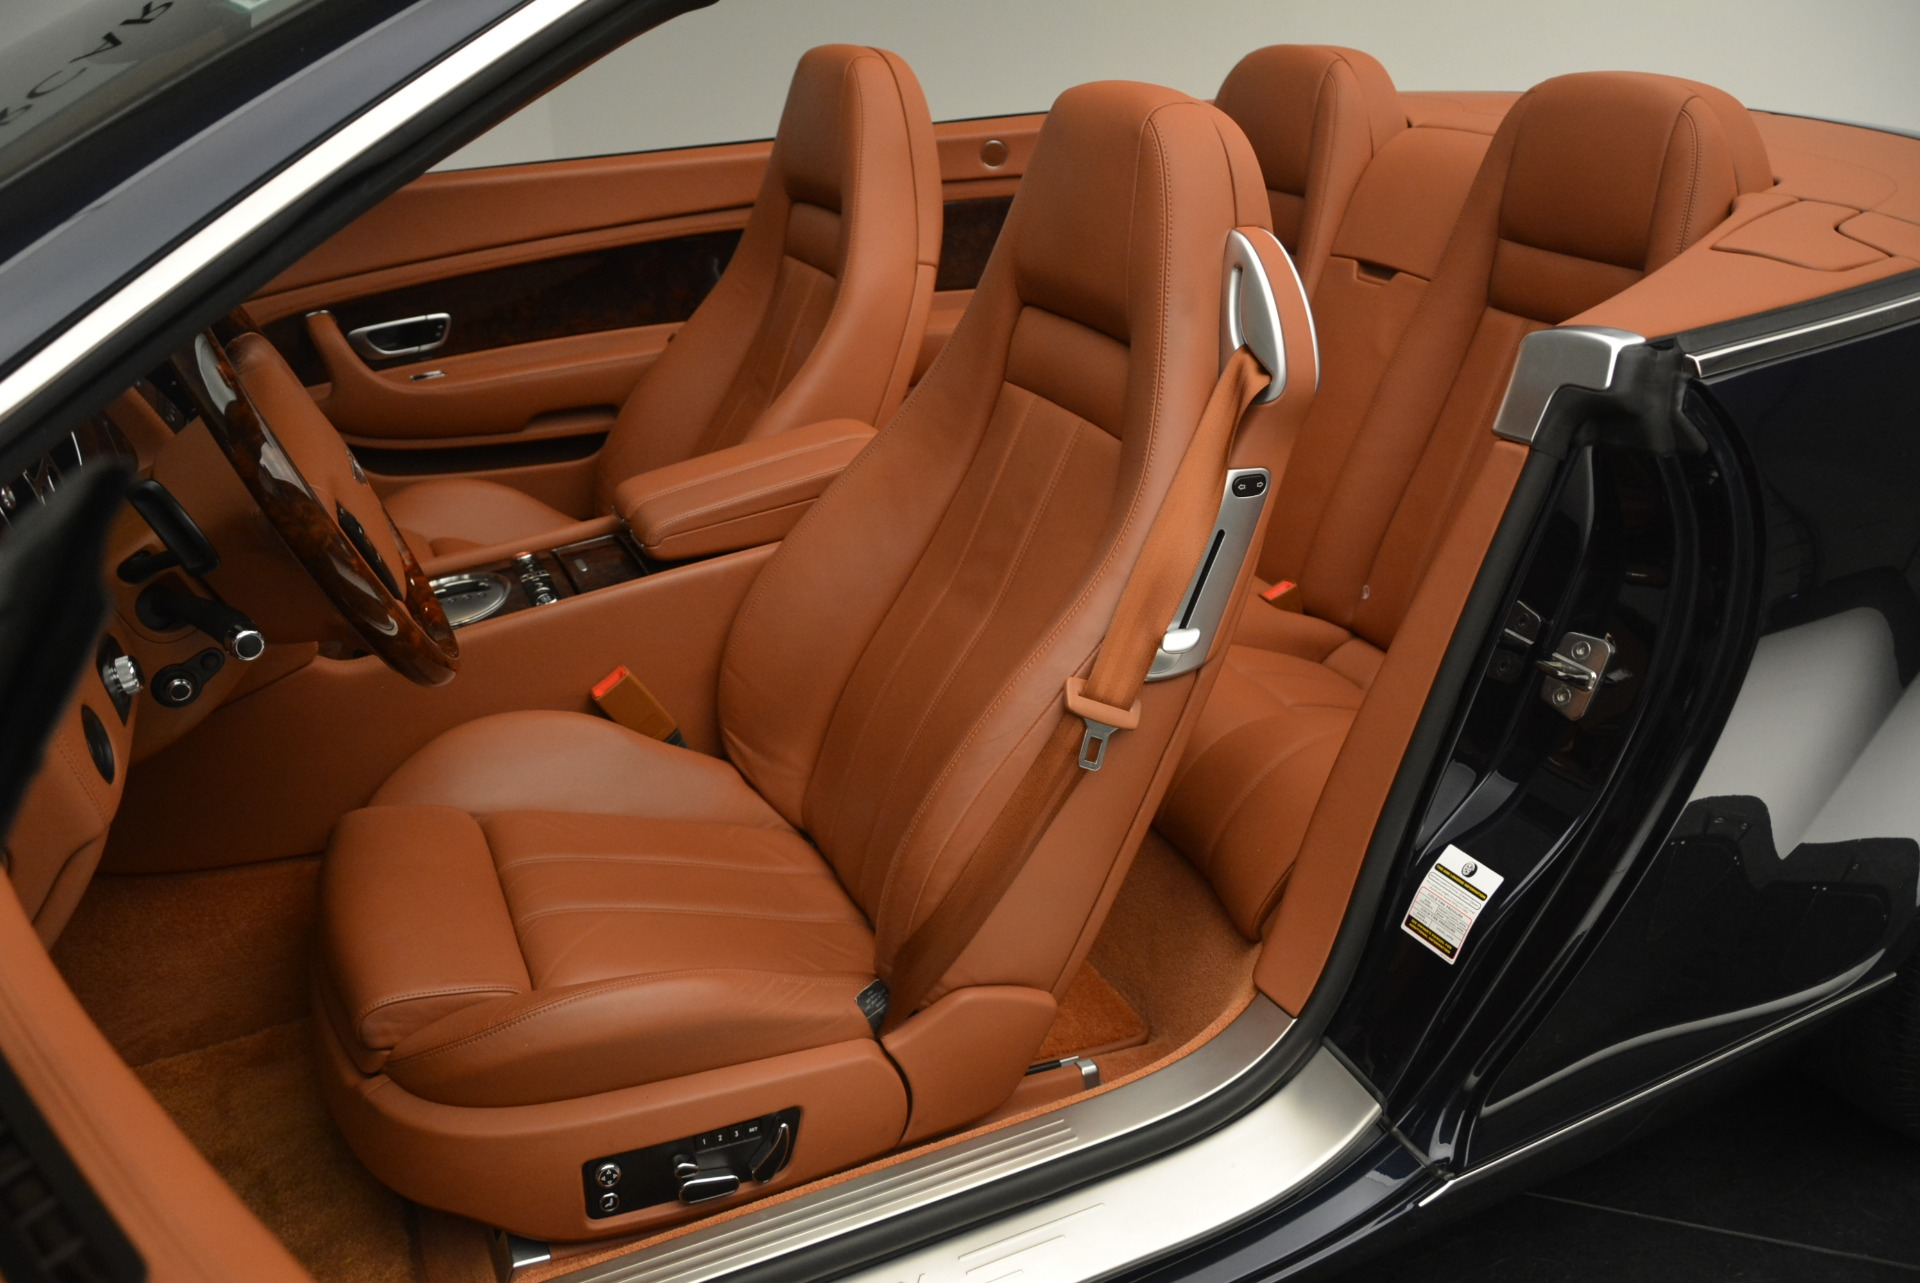 Used 2008 Bentley Continental GTC  For Sale In Westport, CT 2307_p27